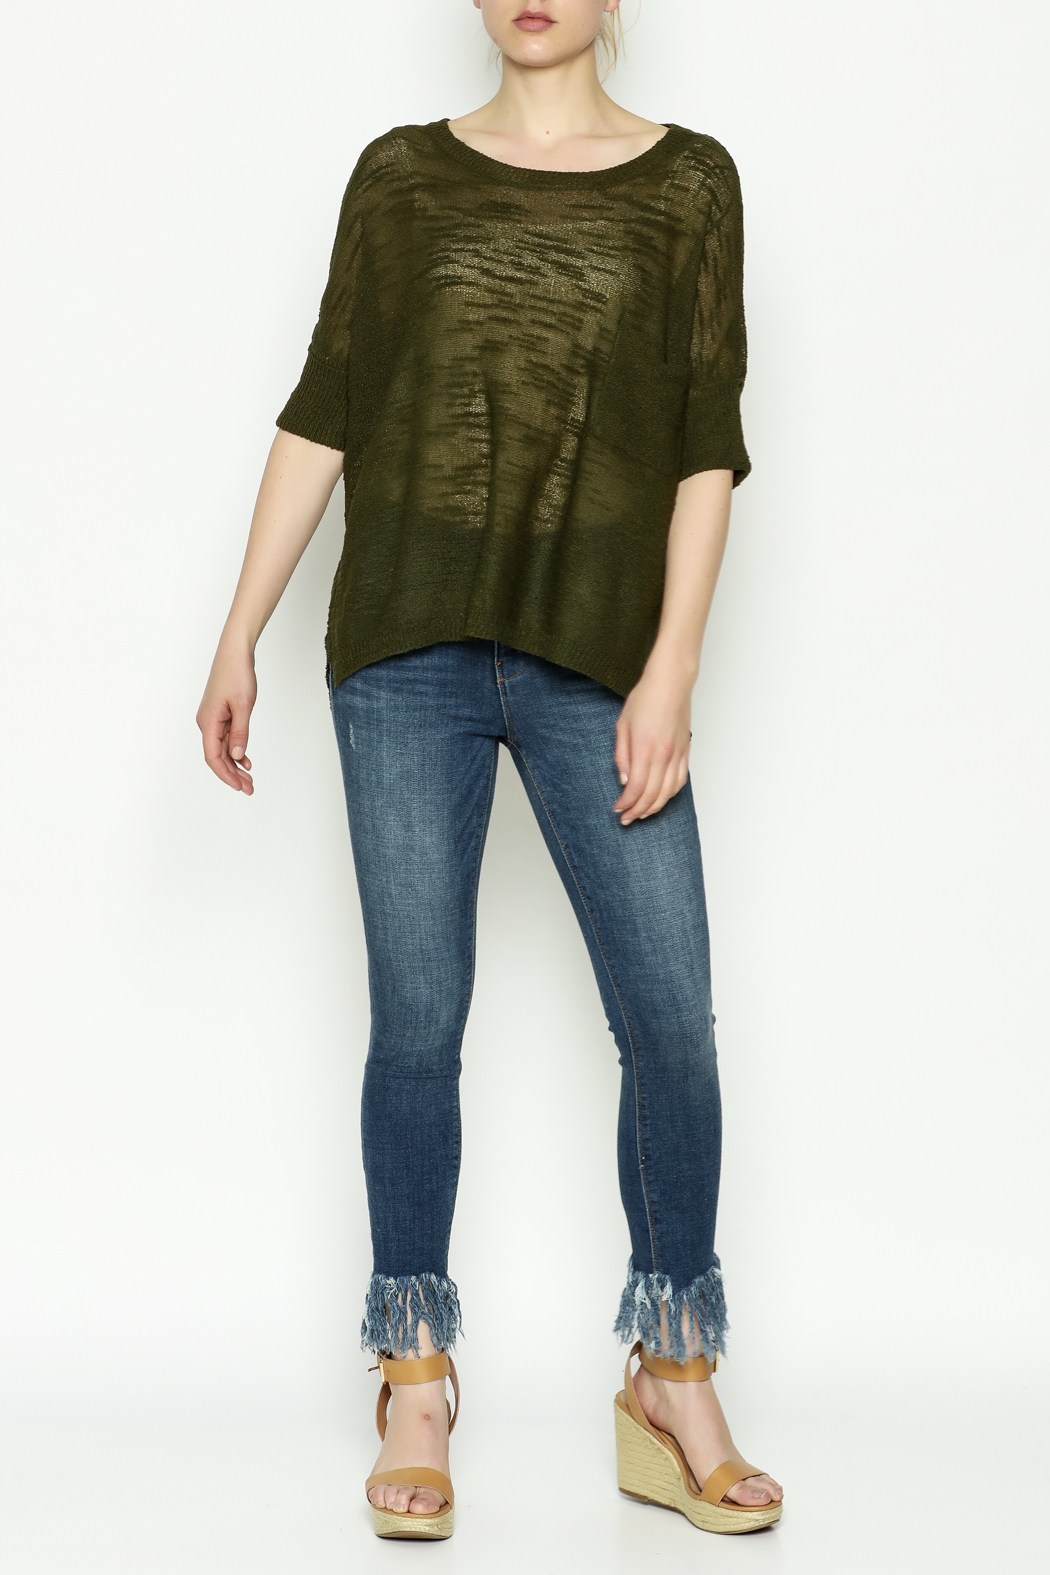 Olive & Oak Olive Lightweight Sweater - Side Cropped Image